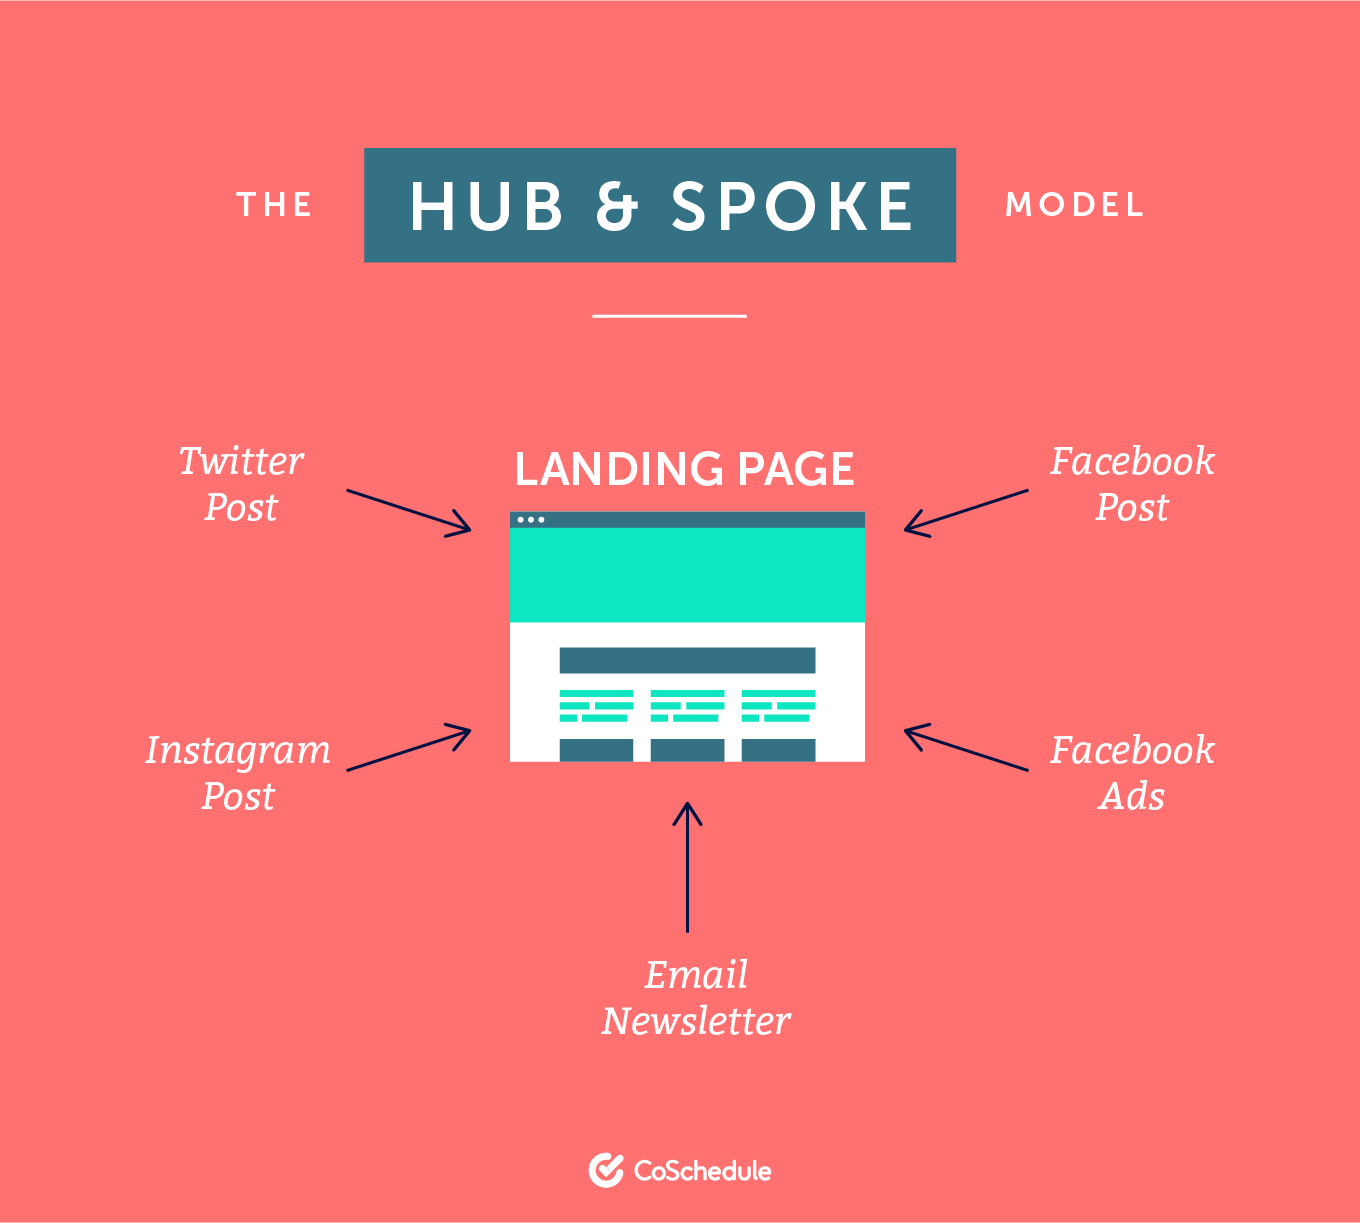 Hub and Spoke Model for landing pages